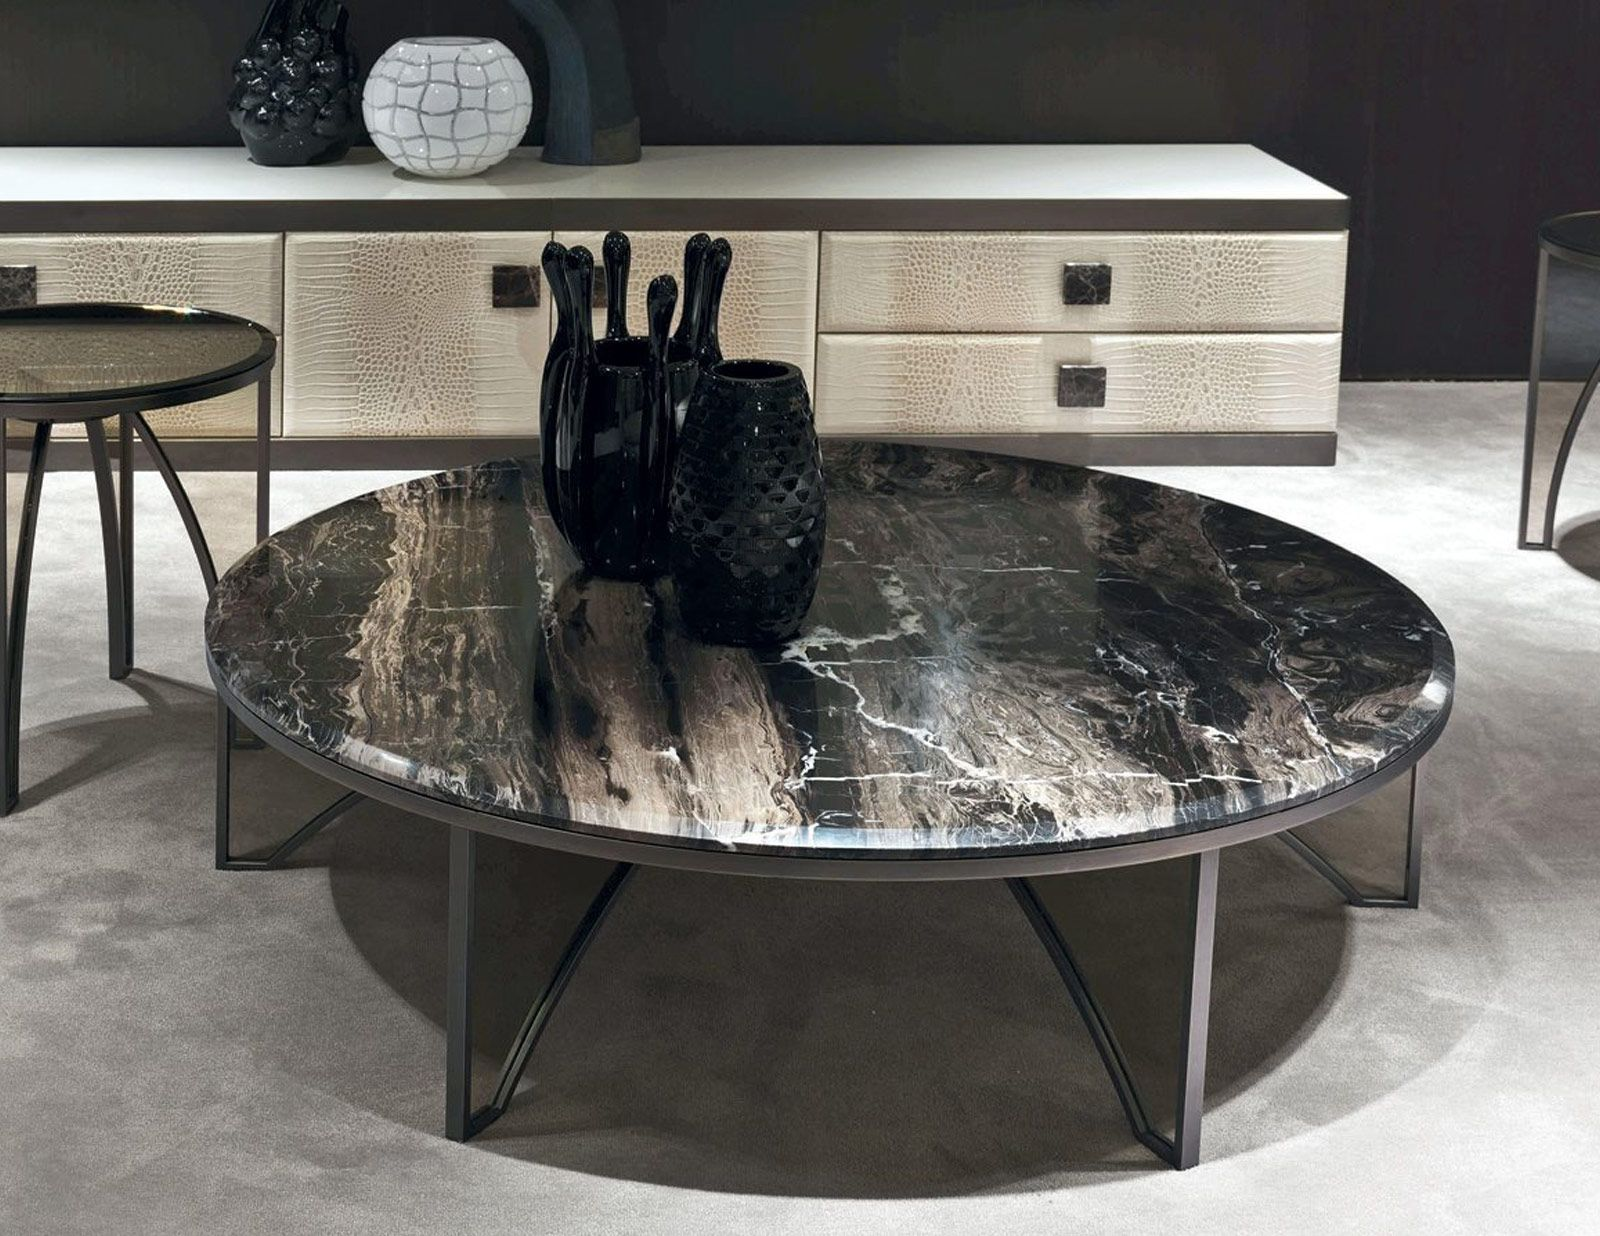 Marble Coffee Table Design Marble Coffee Table Marble Coffee Table Set Marble Coffee Table Modern Granite Coffee Table Marble Coffee Table Coffee Table [ 1236 x 1600 Pixel ]